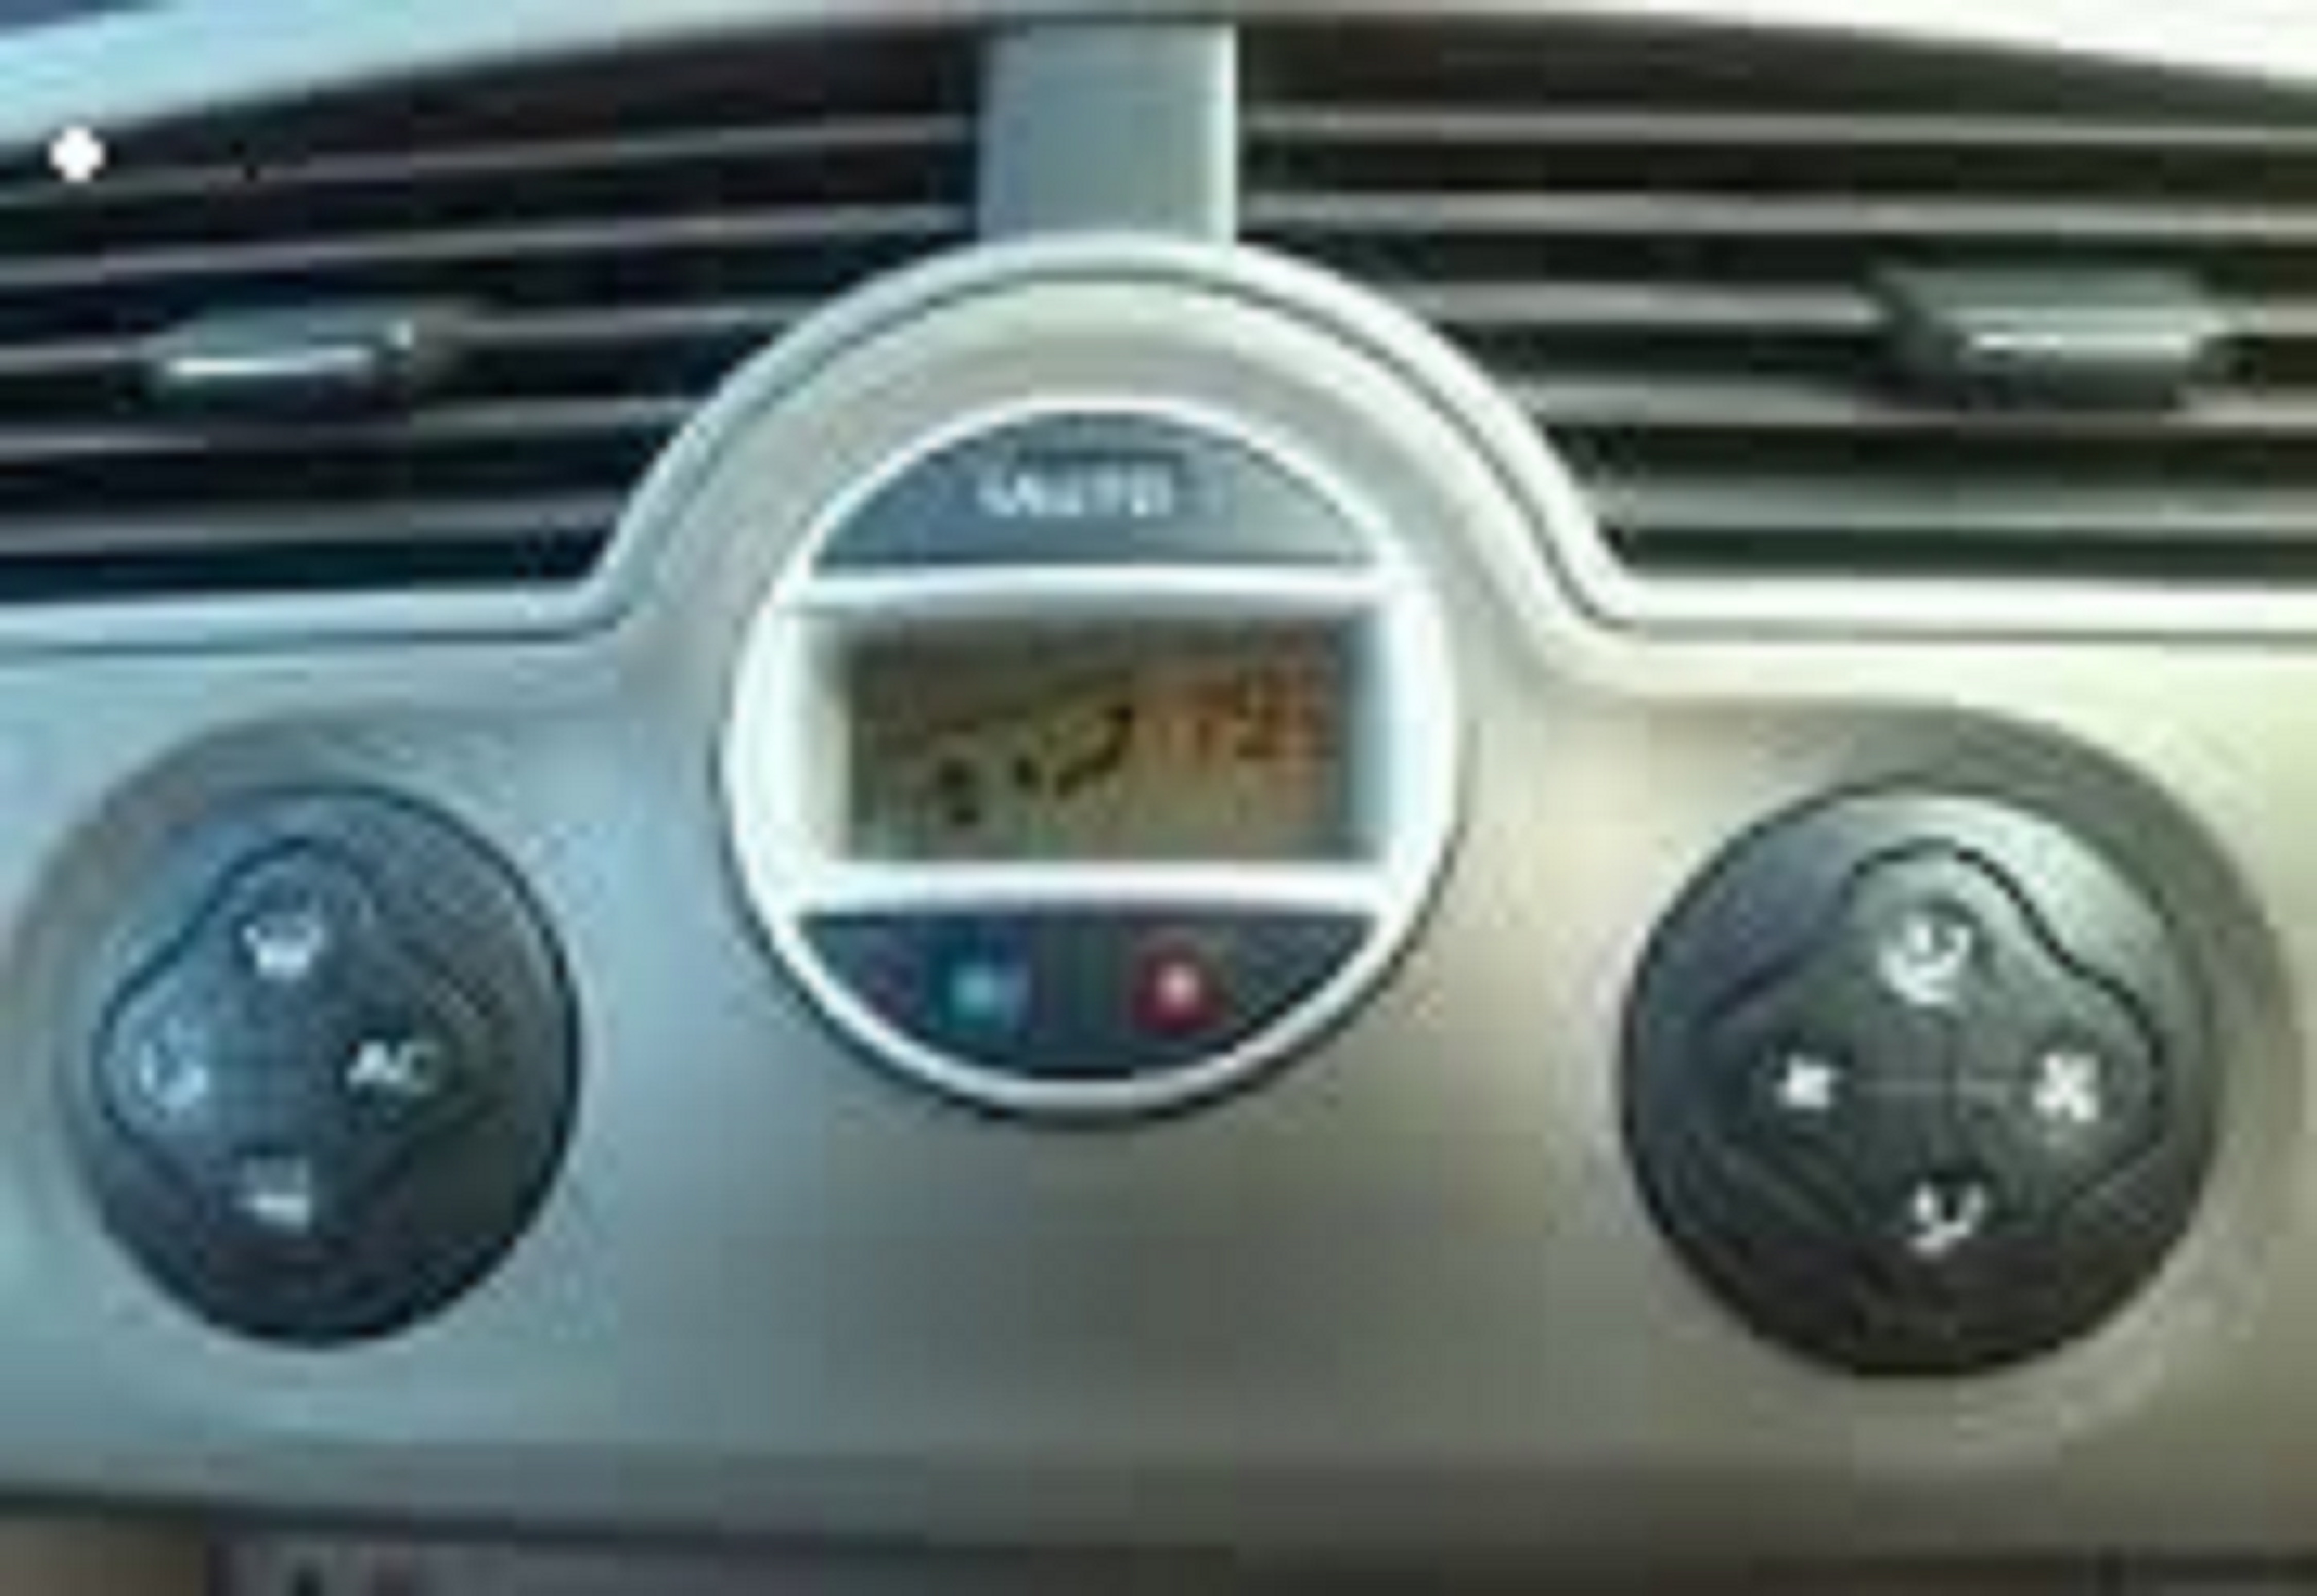 Renault Scenic 2 electronic aircon controls